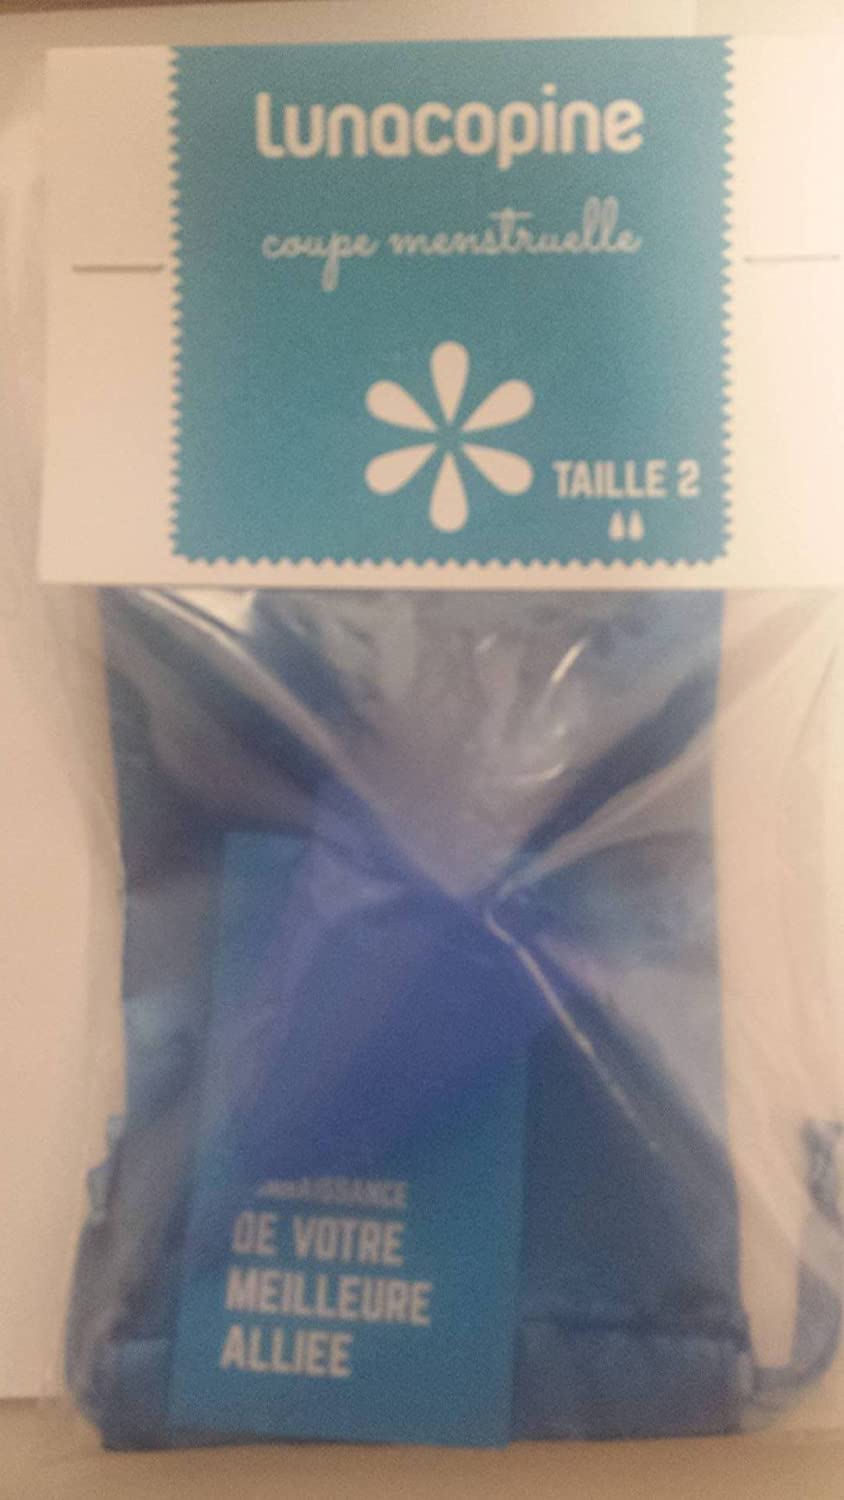 Lunette Reusable Silicone Menstrual Cup - (Model 2 After Childbirth or High Stream, Blue Selene) The Lune Co